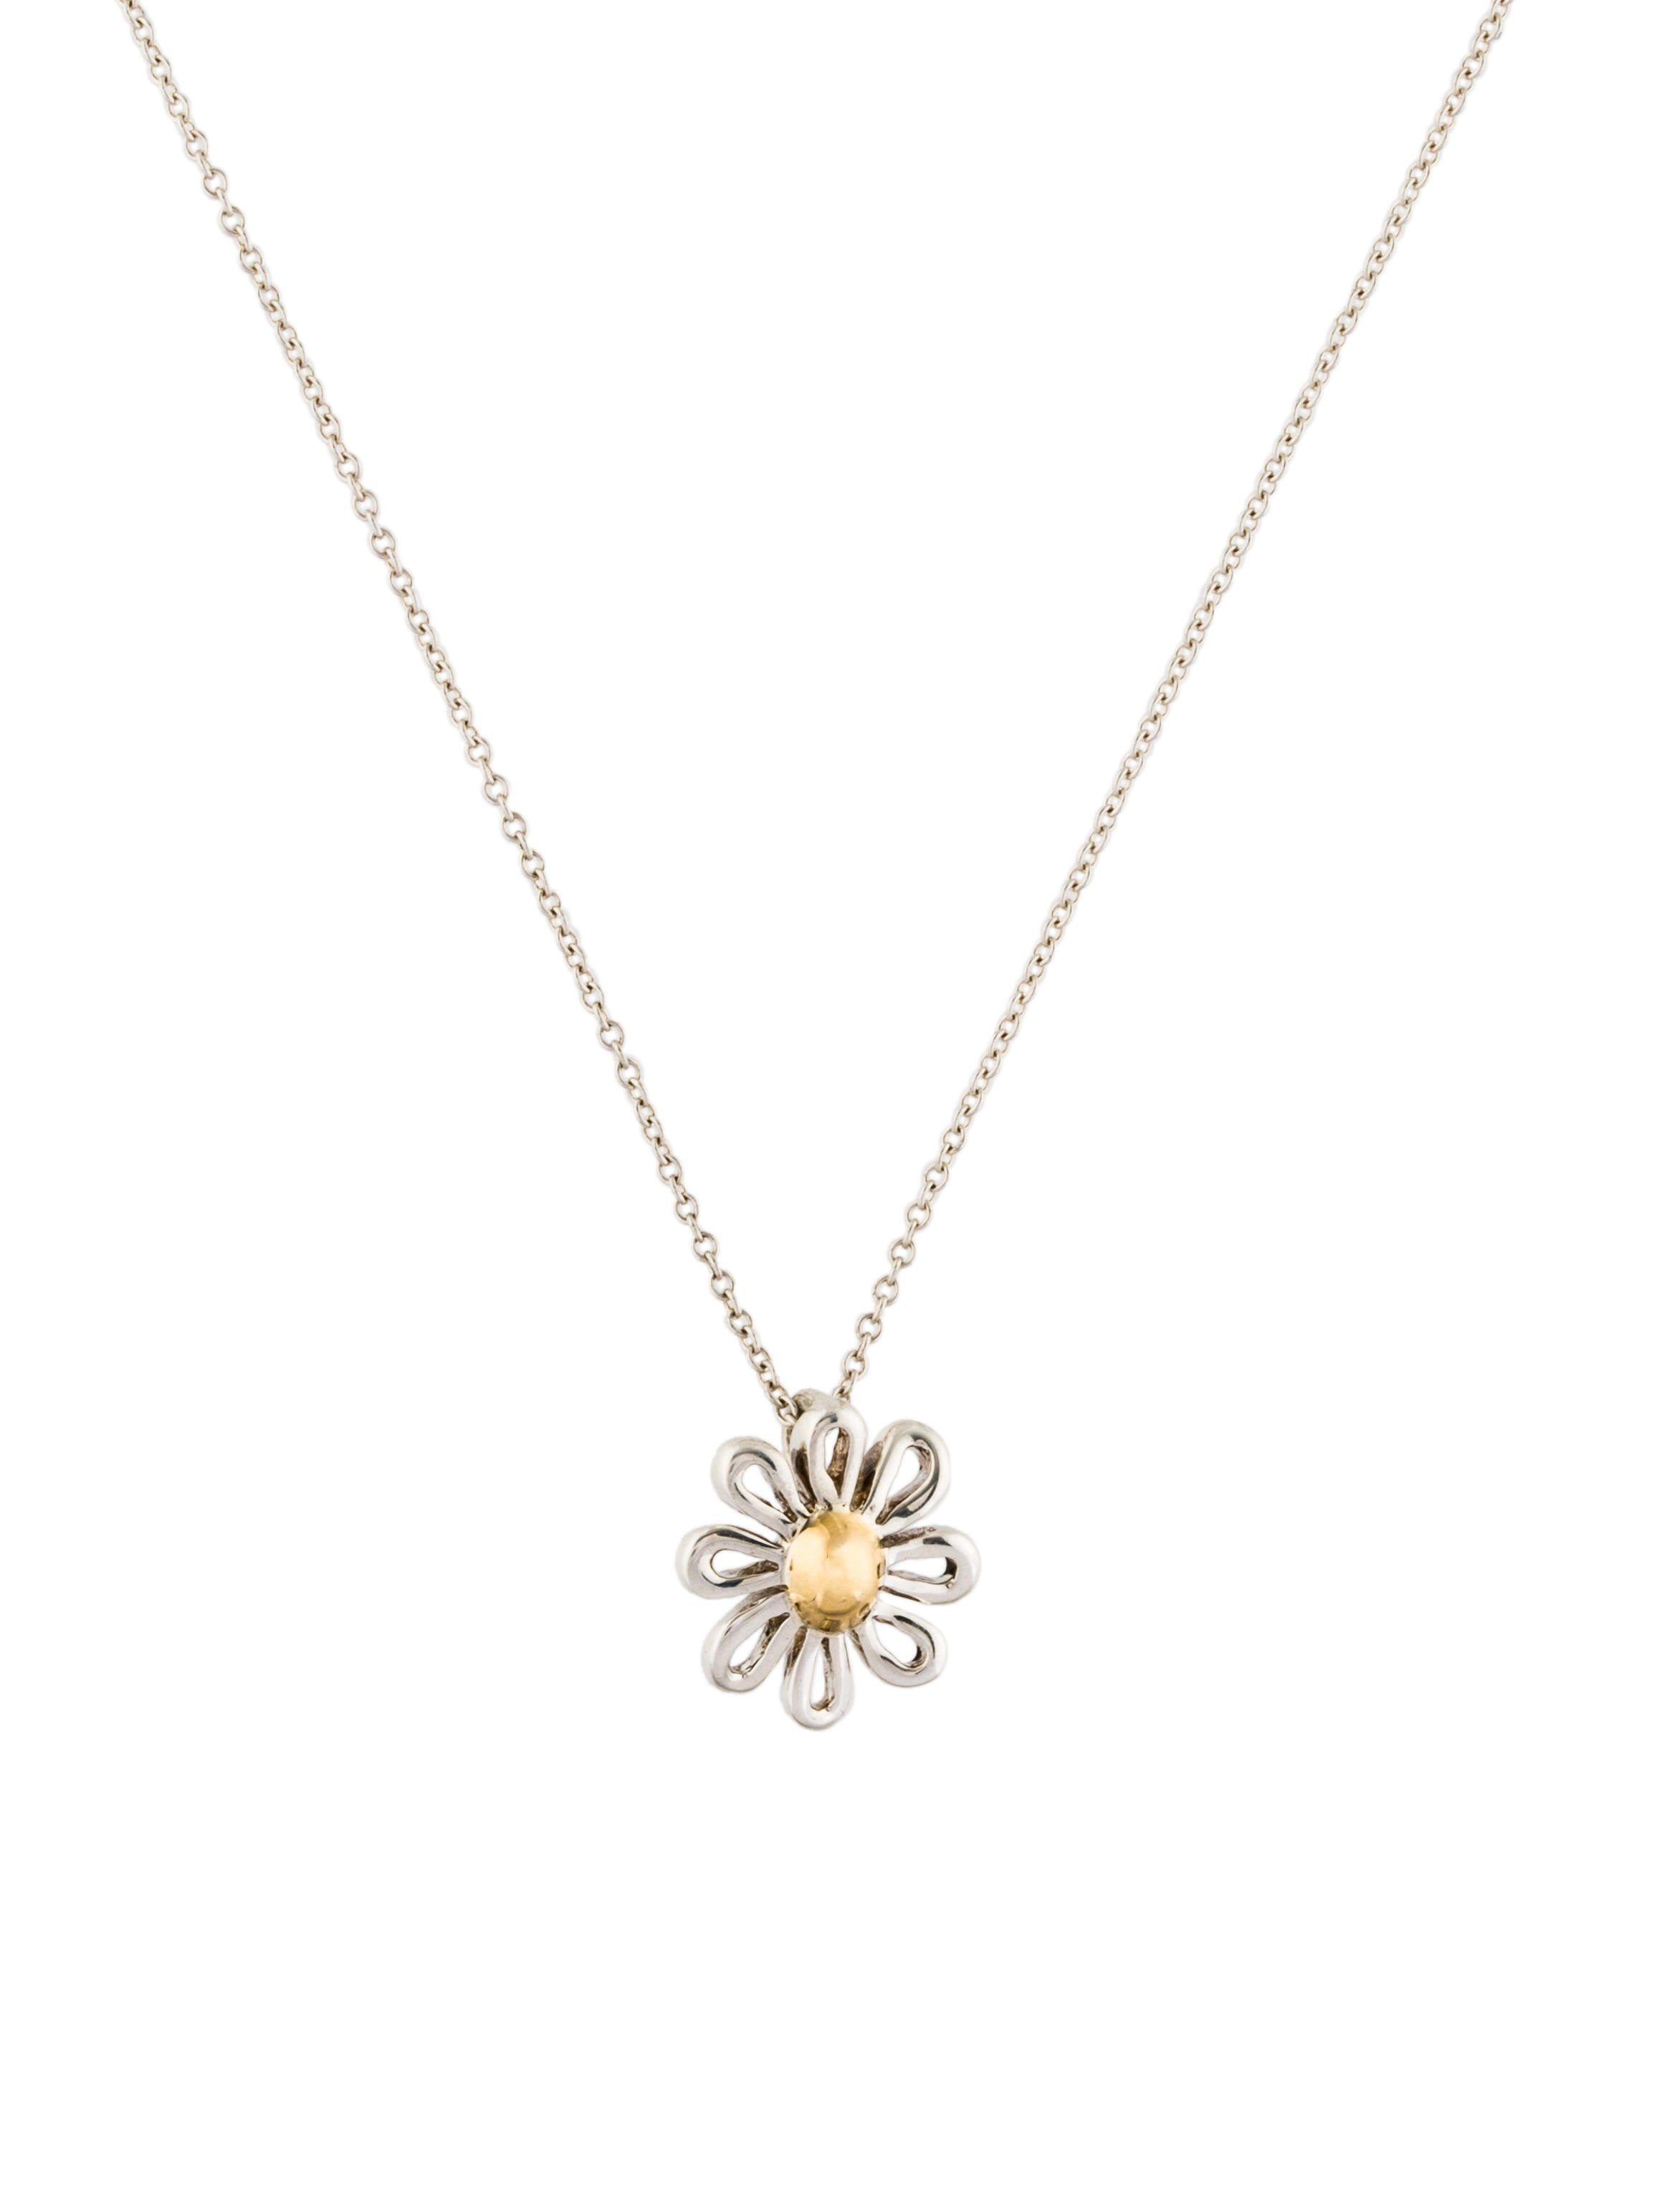 review co necklaces necklace chain oliver in products jewellery vendor tiffany on pendant diamond cf with white comes daisy gold type appraisal a gem